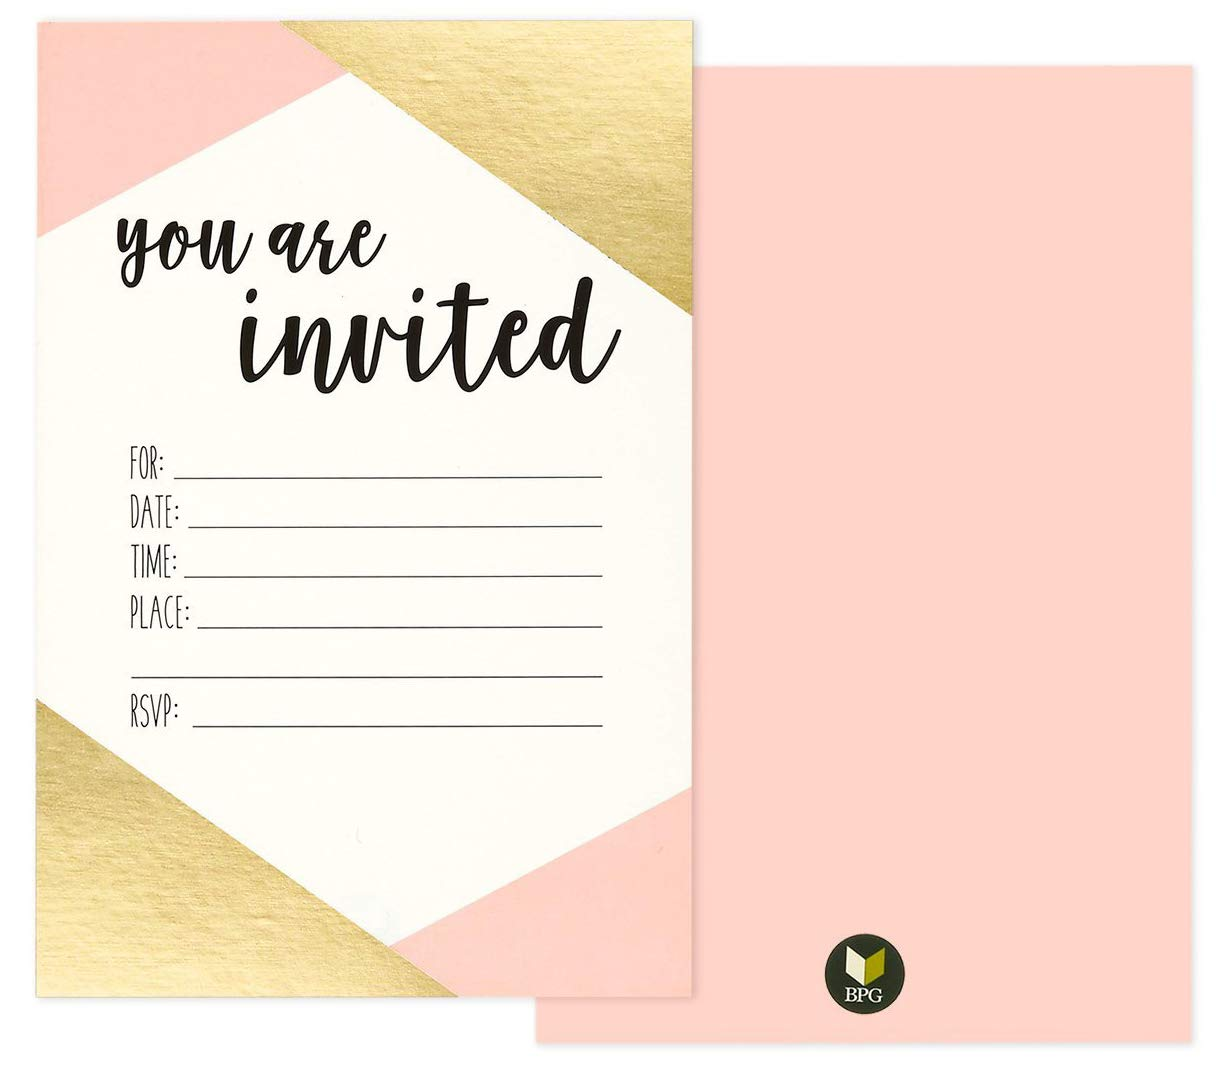 36 Pack Pink and Gold Foil ''You Are Invited'' Minimalist Party Invitation Card Set - Shabby Chic, Novelty, Invites for Birthdays, Bachelorette Parties, Envelopes Included, 4 x 6 Inches